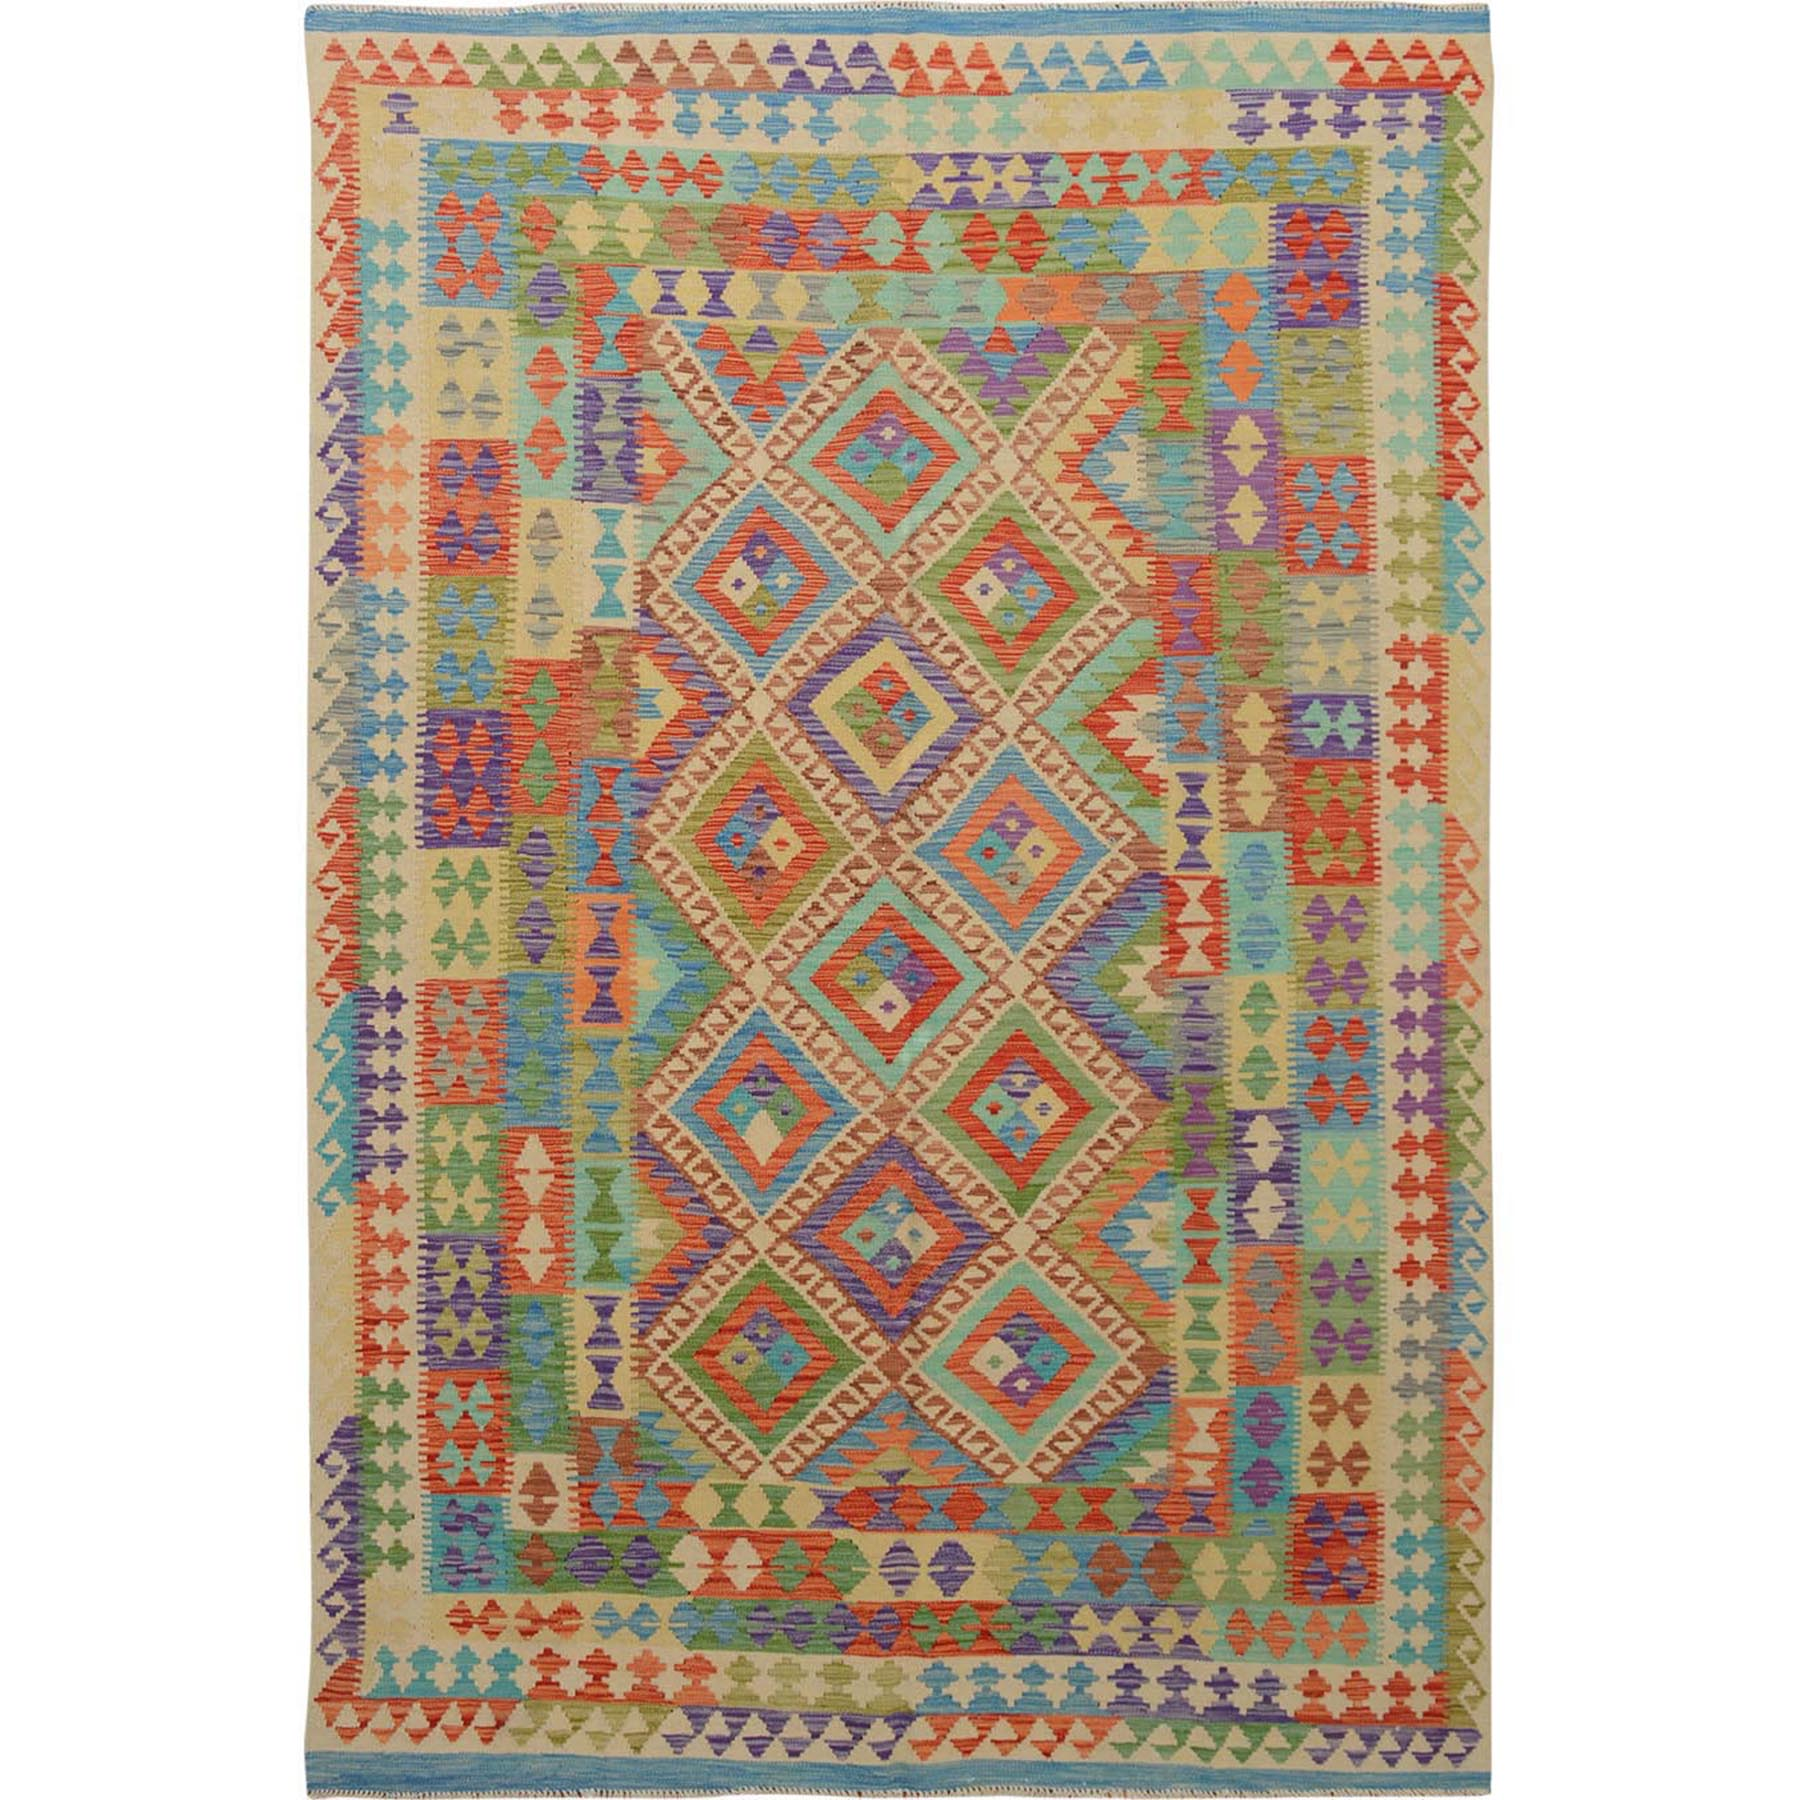 "6'7""x9'7"" Colorful Afghan Reversible Kilim Pure Wool Hand Woven Oriental Rug"